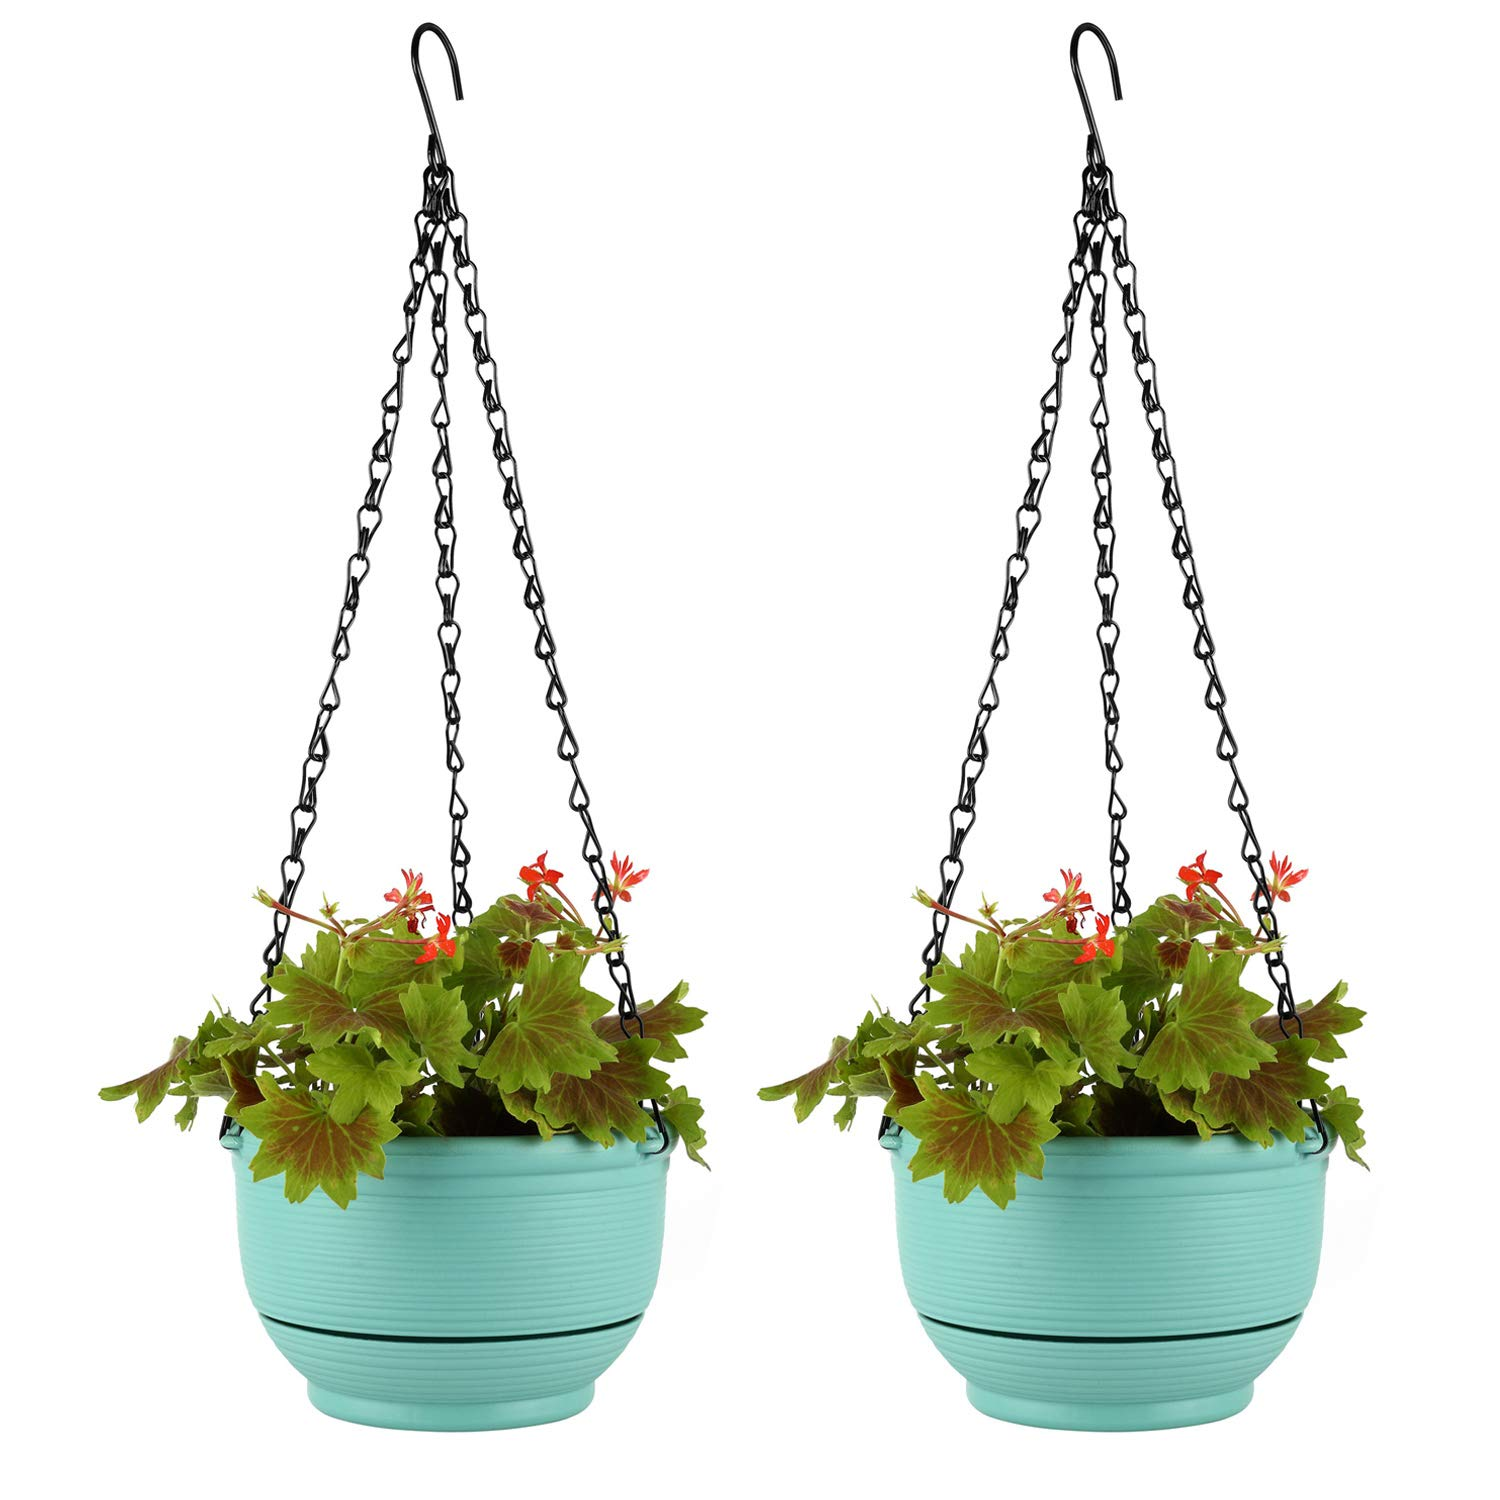 T4U Plastic Hanging Planter Self Watering Basket with Detachable Base 7 Inch Mint Green Set of 2 - Round Hanging Flower Plant Pot Deep Reservoir Container Box for House Plants Home Garden Decoration